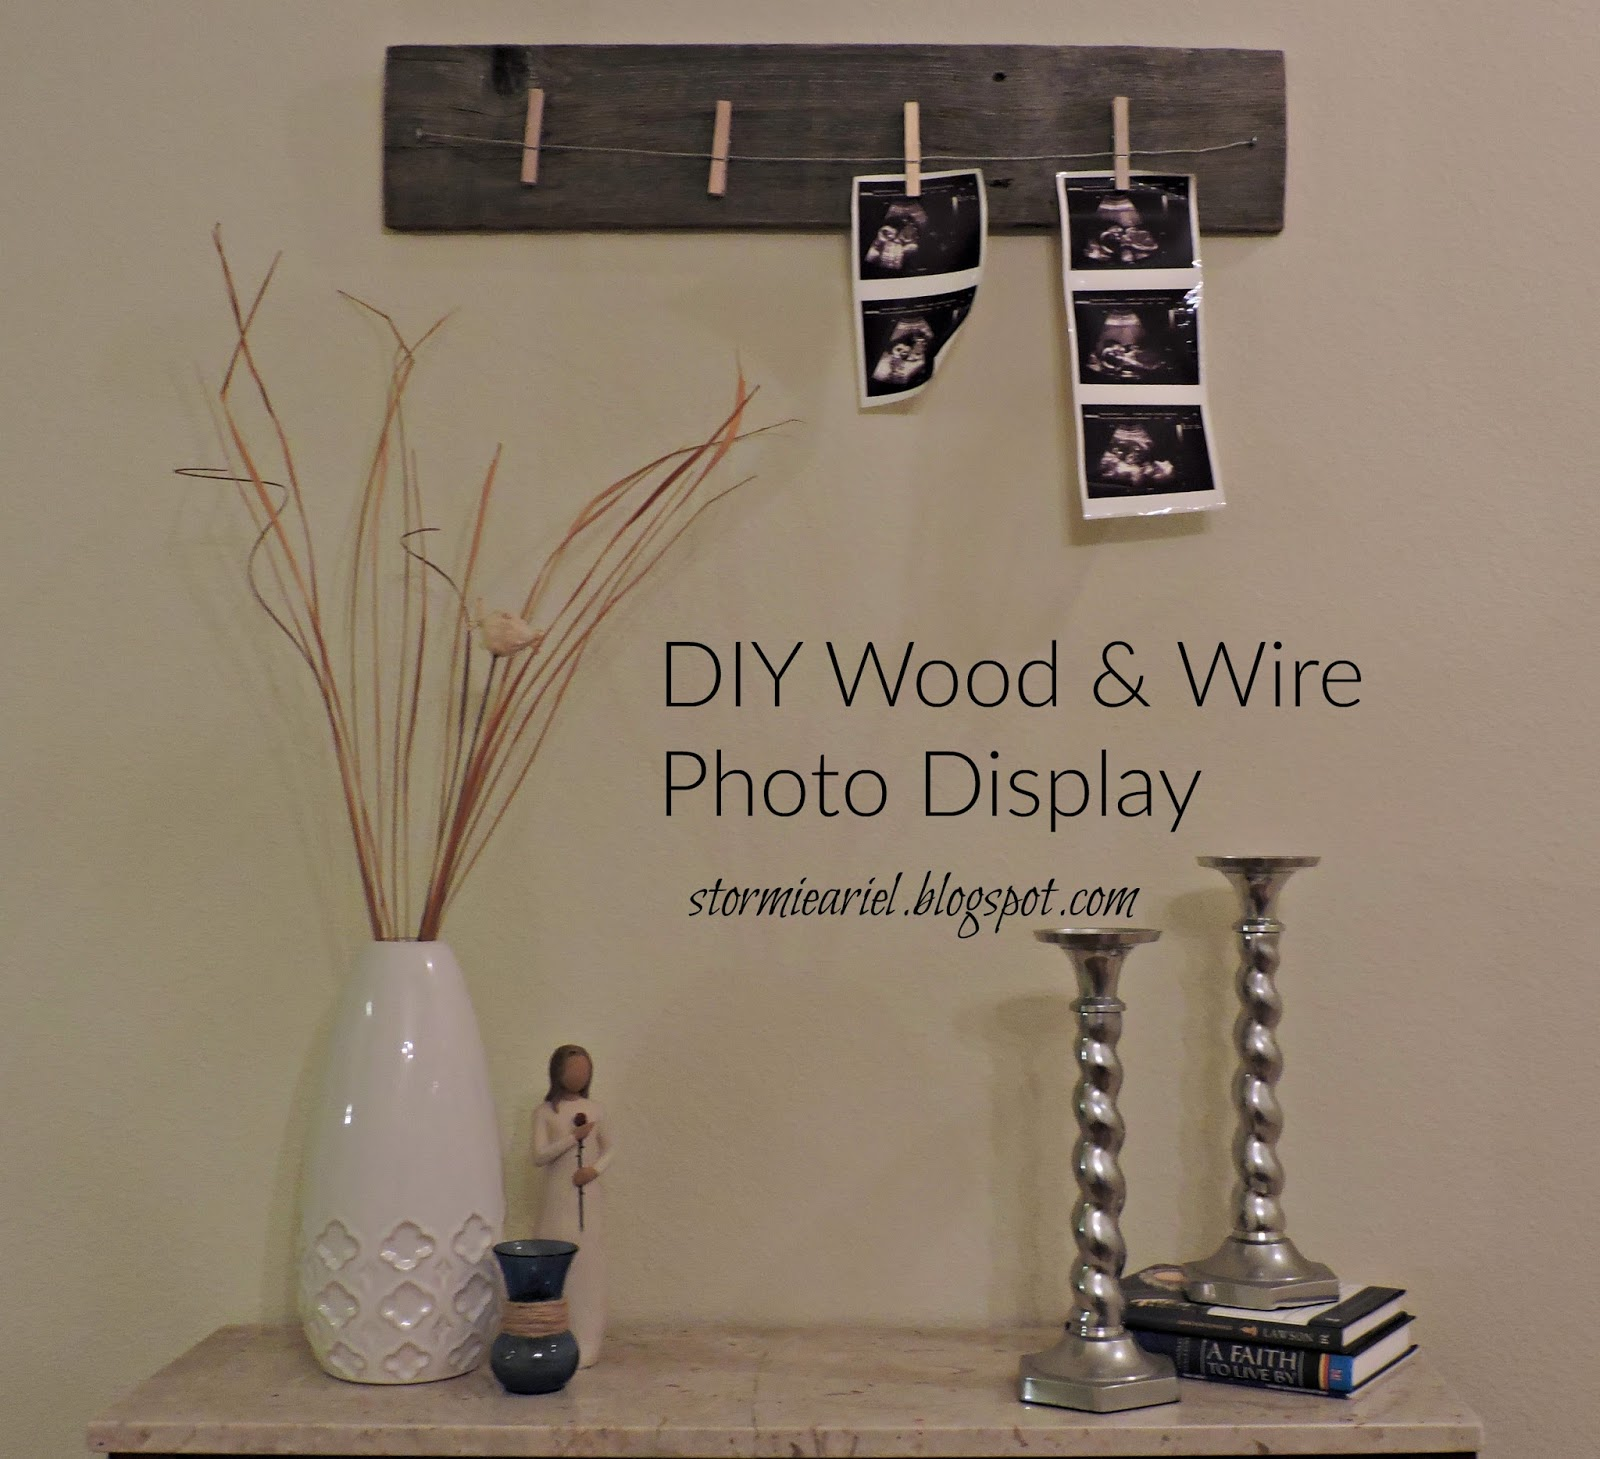 DIY Wood & Wire Photo Display